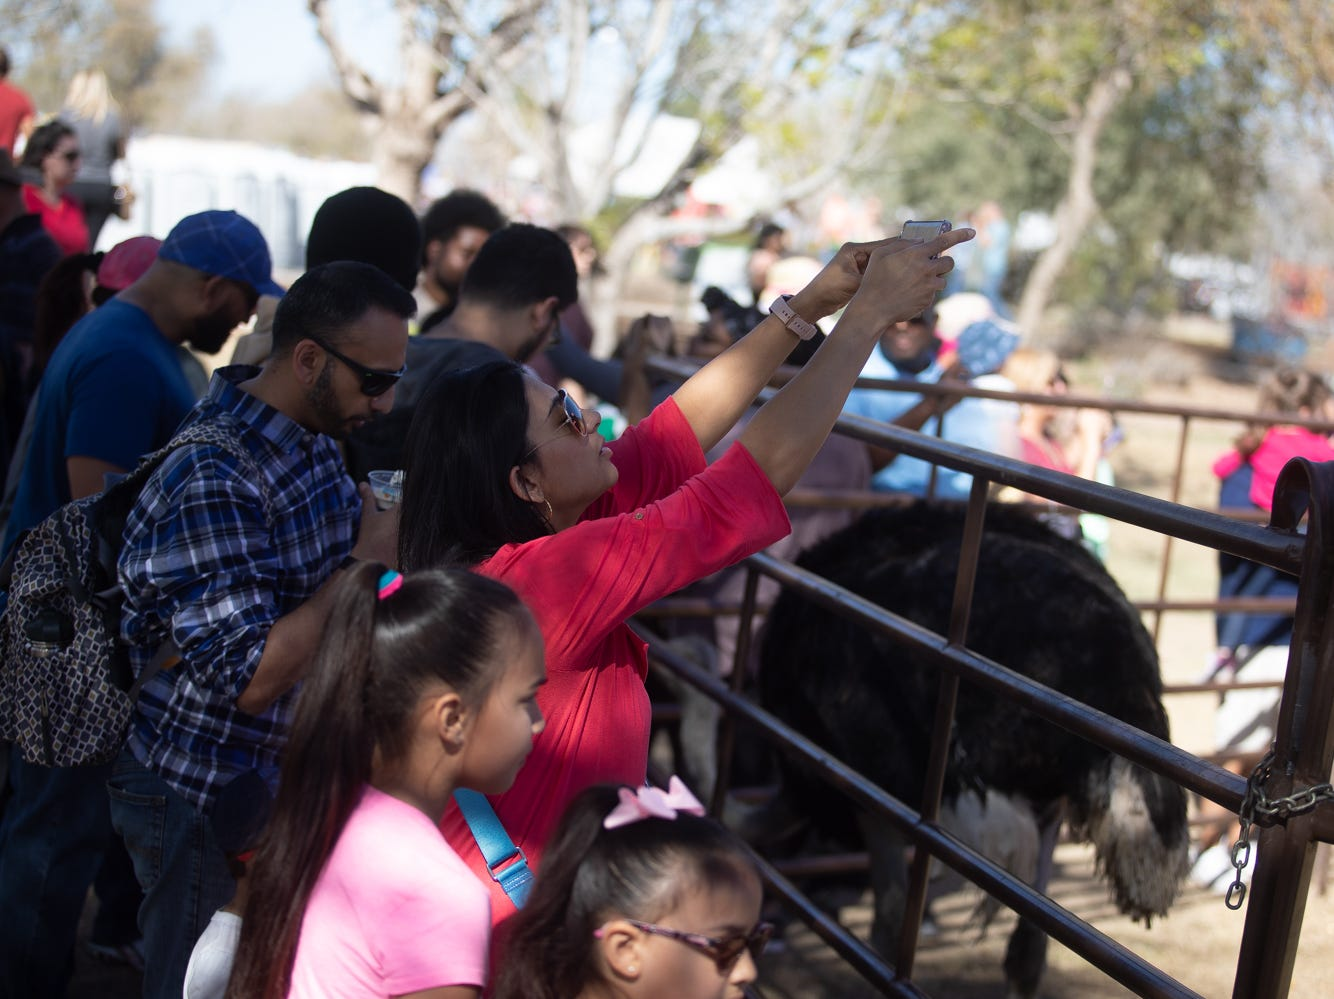 Attendees were eager to snap photos of the ostriches at the Chandler Ostrich Festival on Sunday, March. 10, 2019.